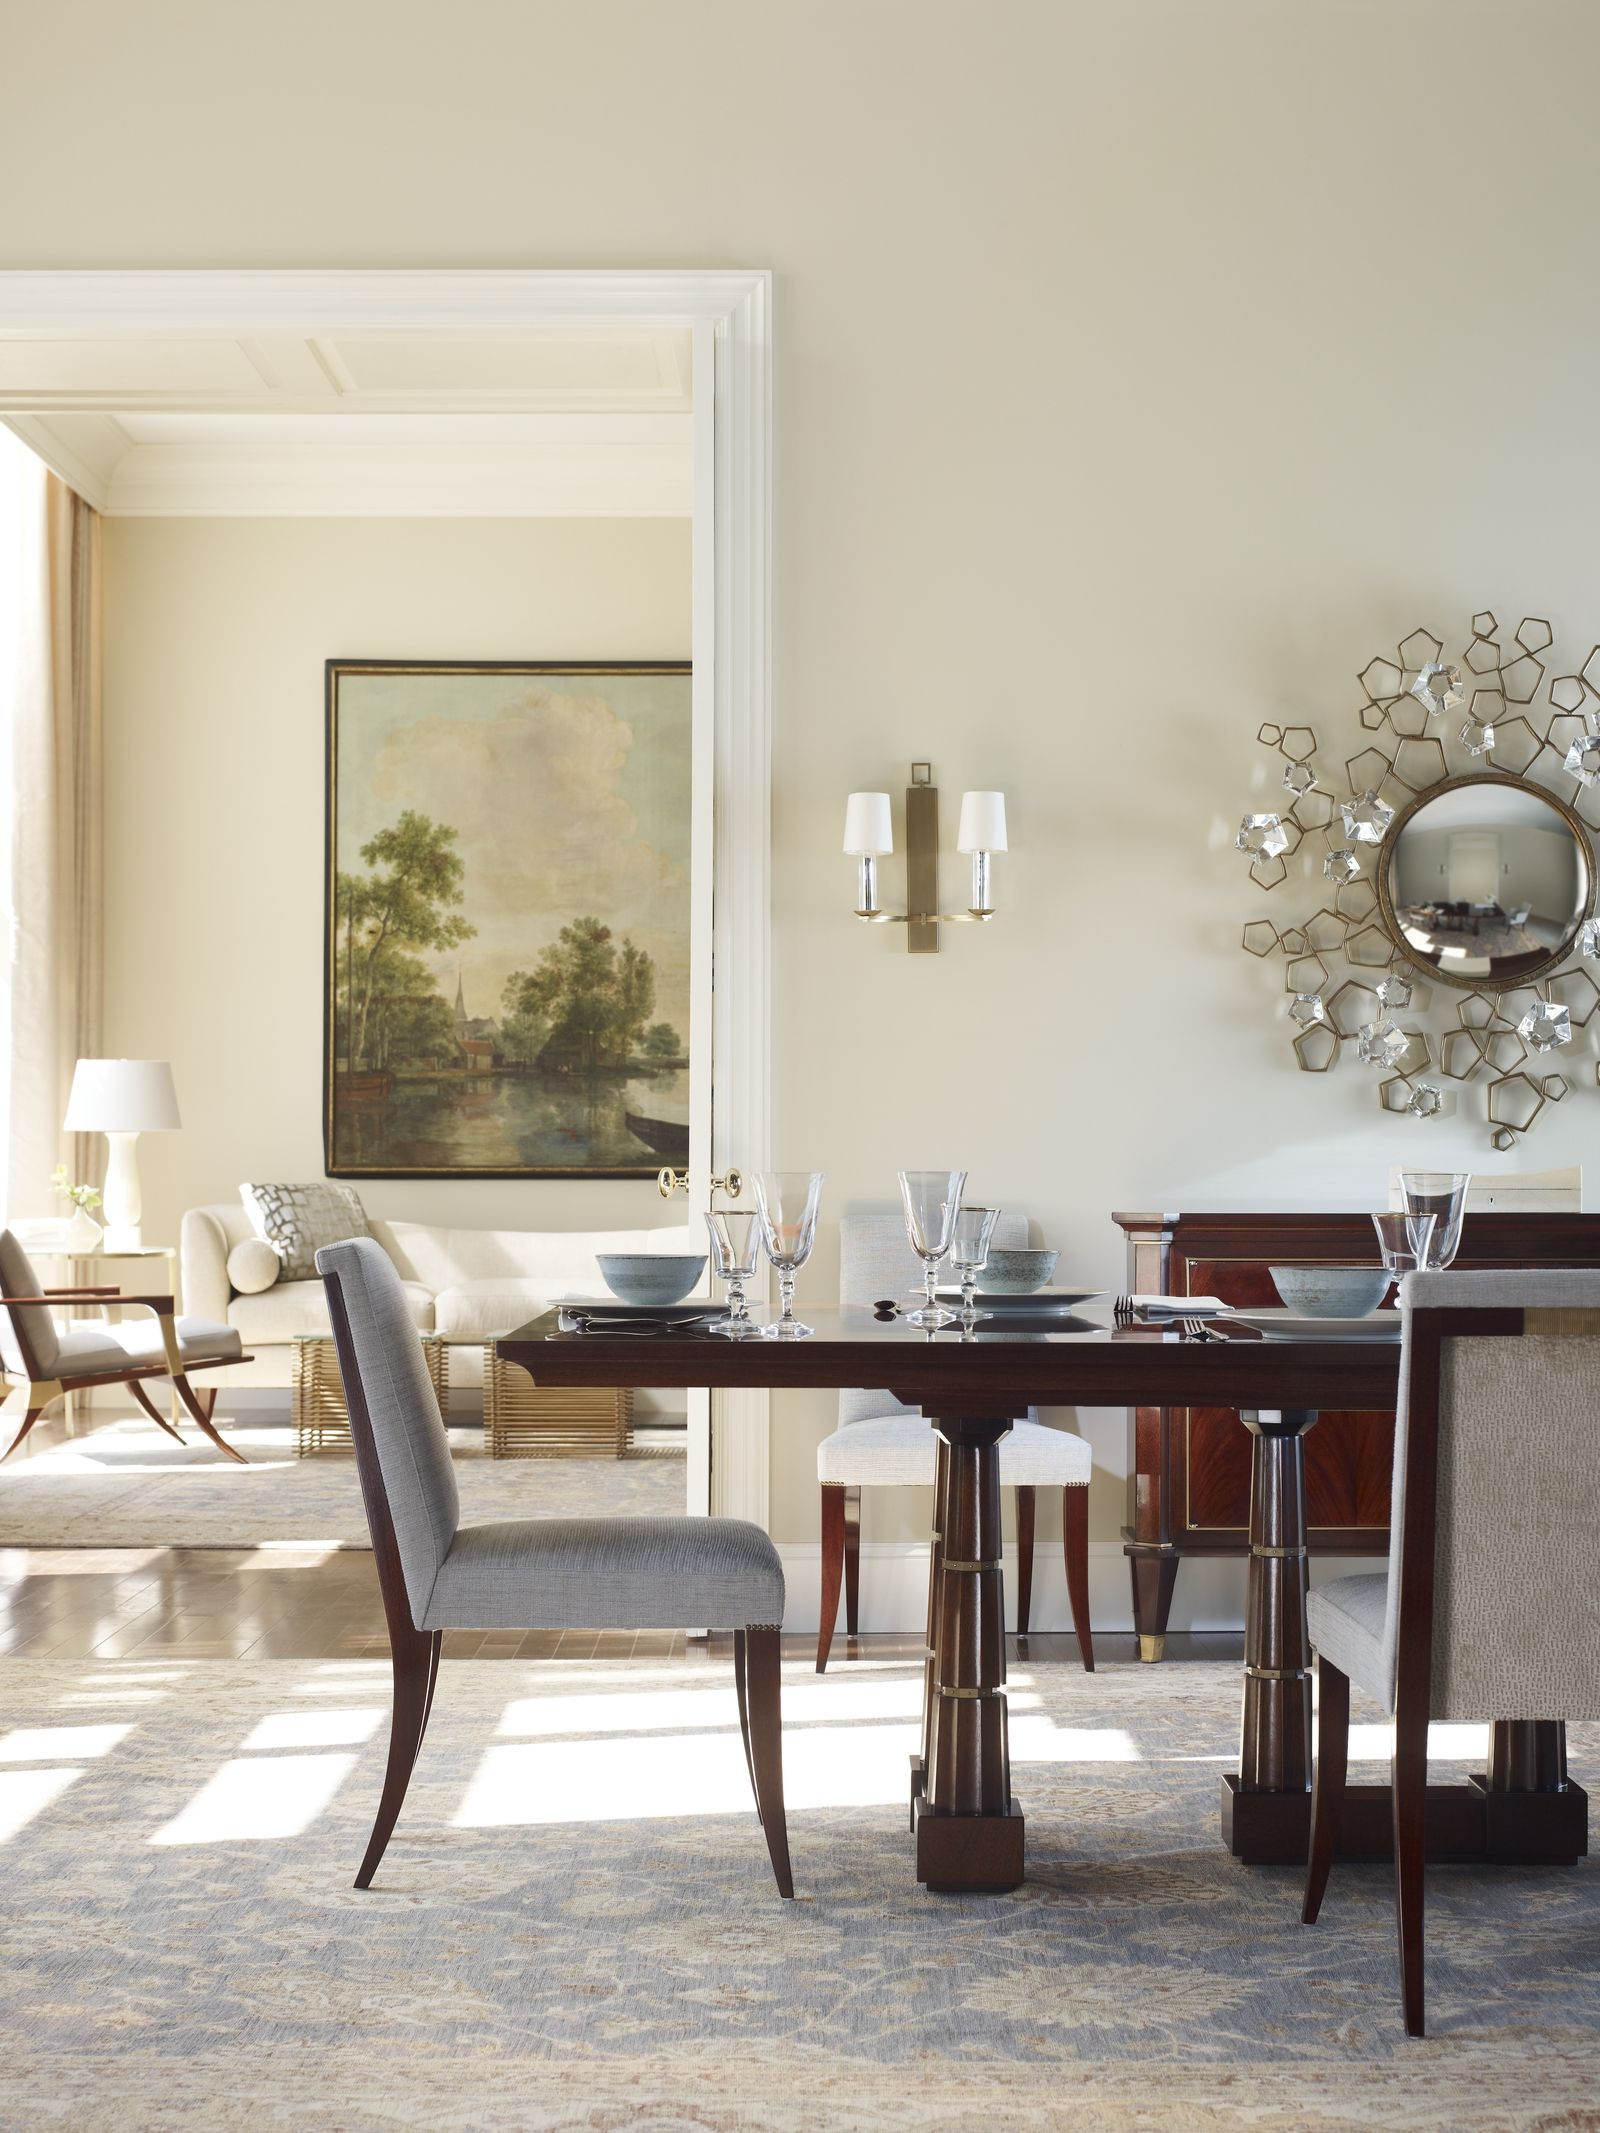 Dining room designed by thomas pheasant baker furniture classic